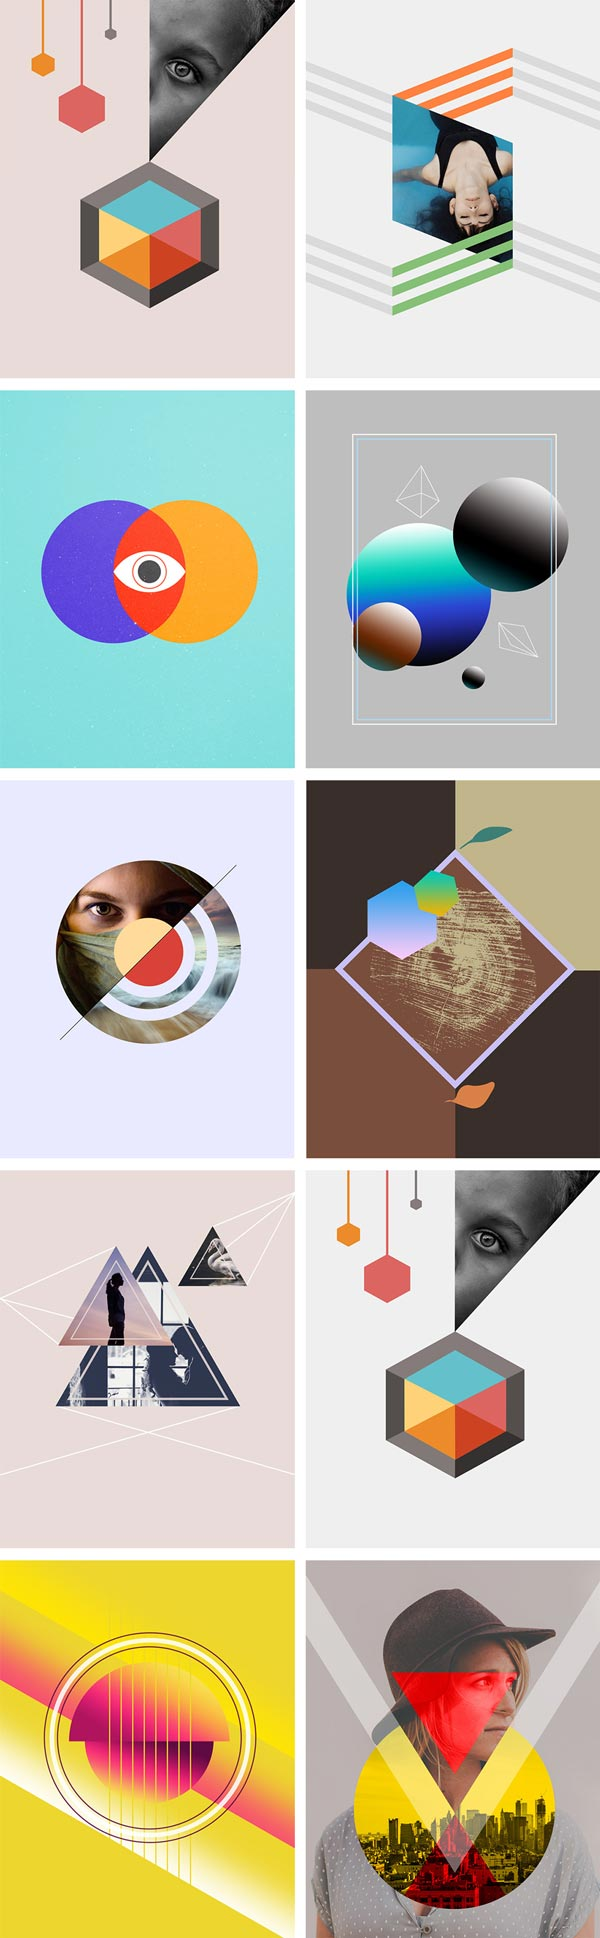 Free Abstract Vector Forms and Shapes